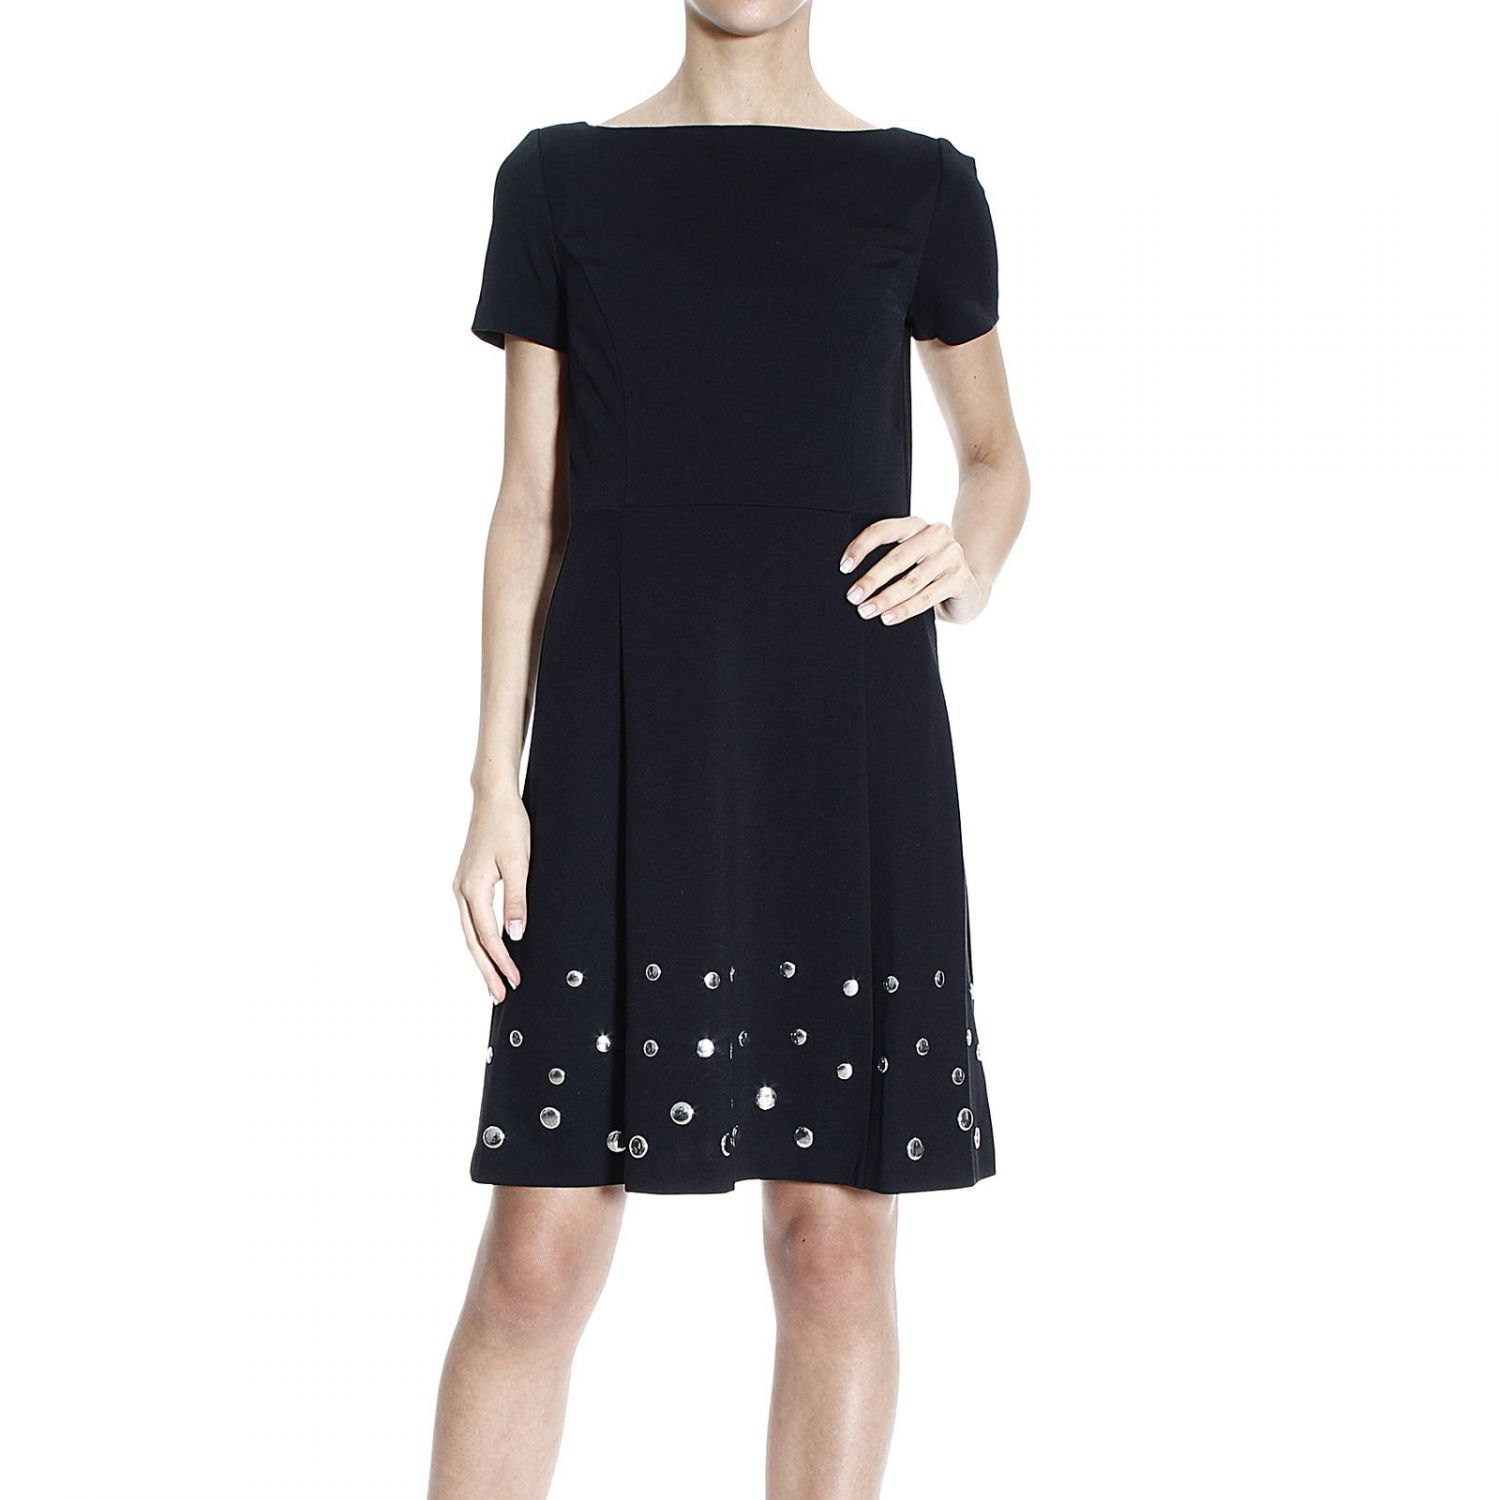 Amazing He Says I Love People When Michael Kors Meets Michael Kors, A Flicker Of Recognition Crosses His Face I Am Heading To The Raffles Hotels Raffles Grill For Lunch With The American Fashion Designer I Am, Of Course, Wearing A Michael